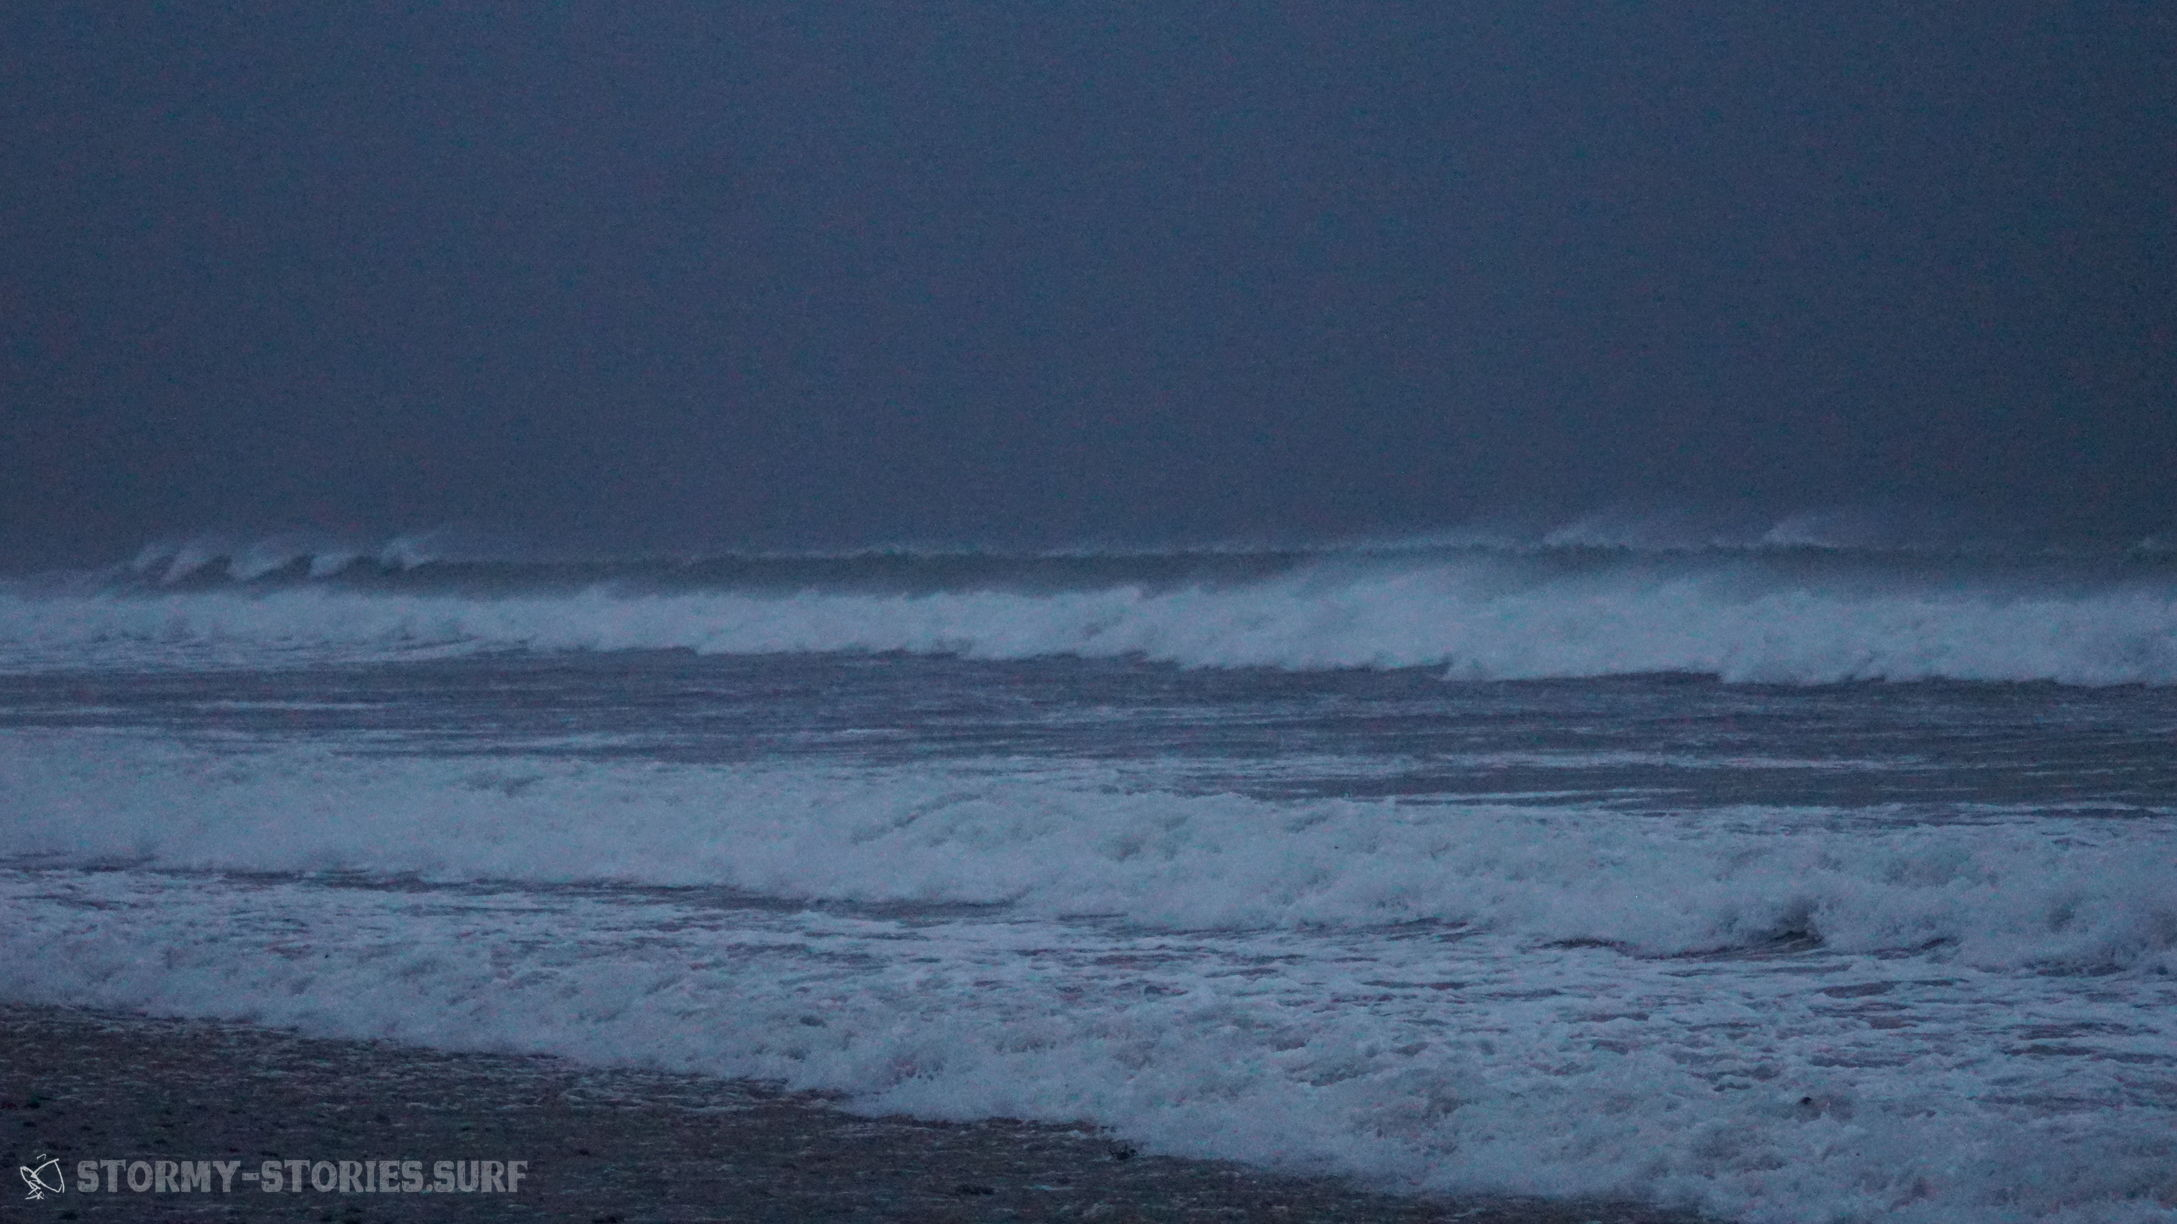 windsurf-stormy-stories-surf-travel-blog-ireland-irland-11-06-brandon-bay-stradbally-WM-35p-DSC09413